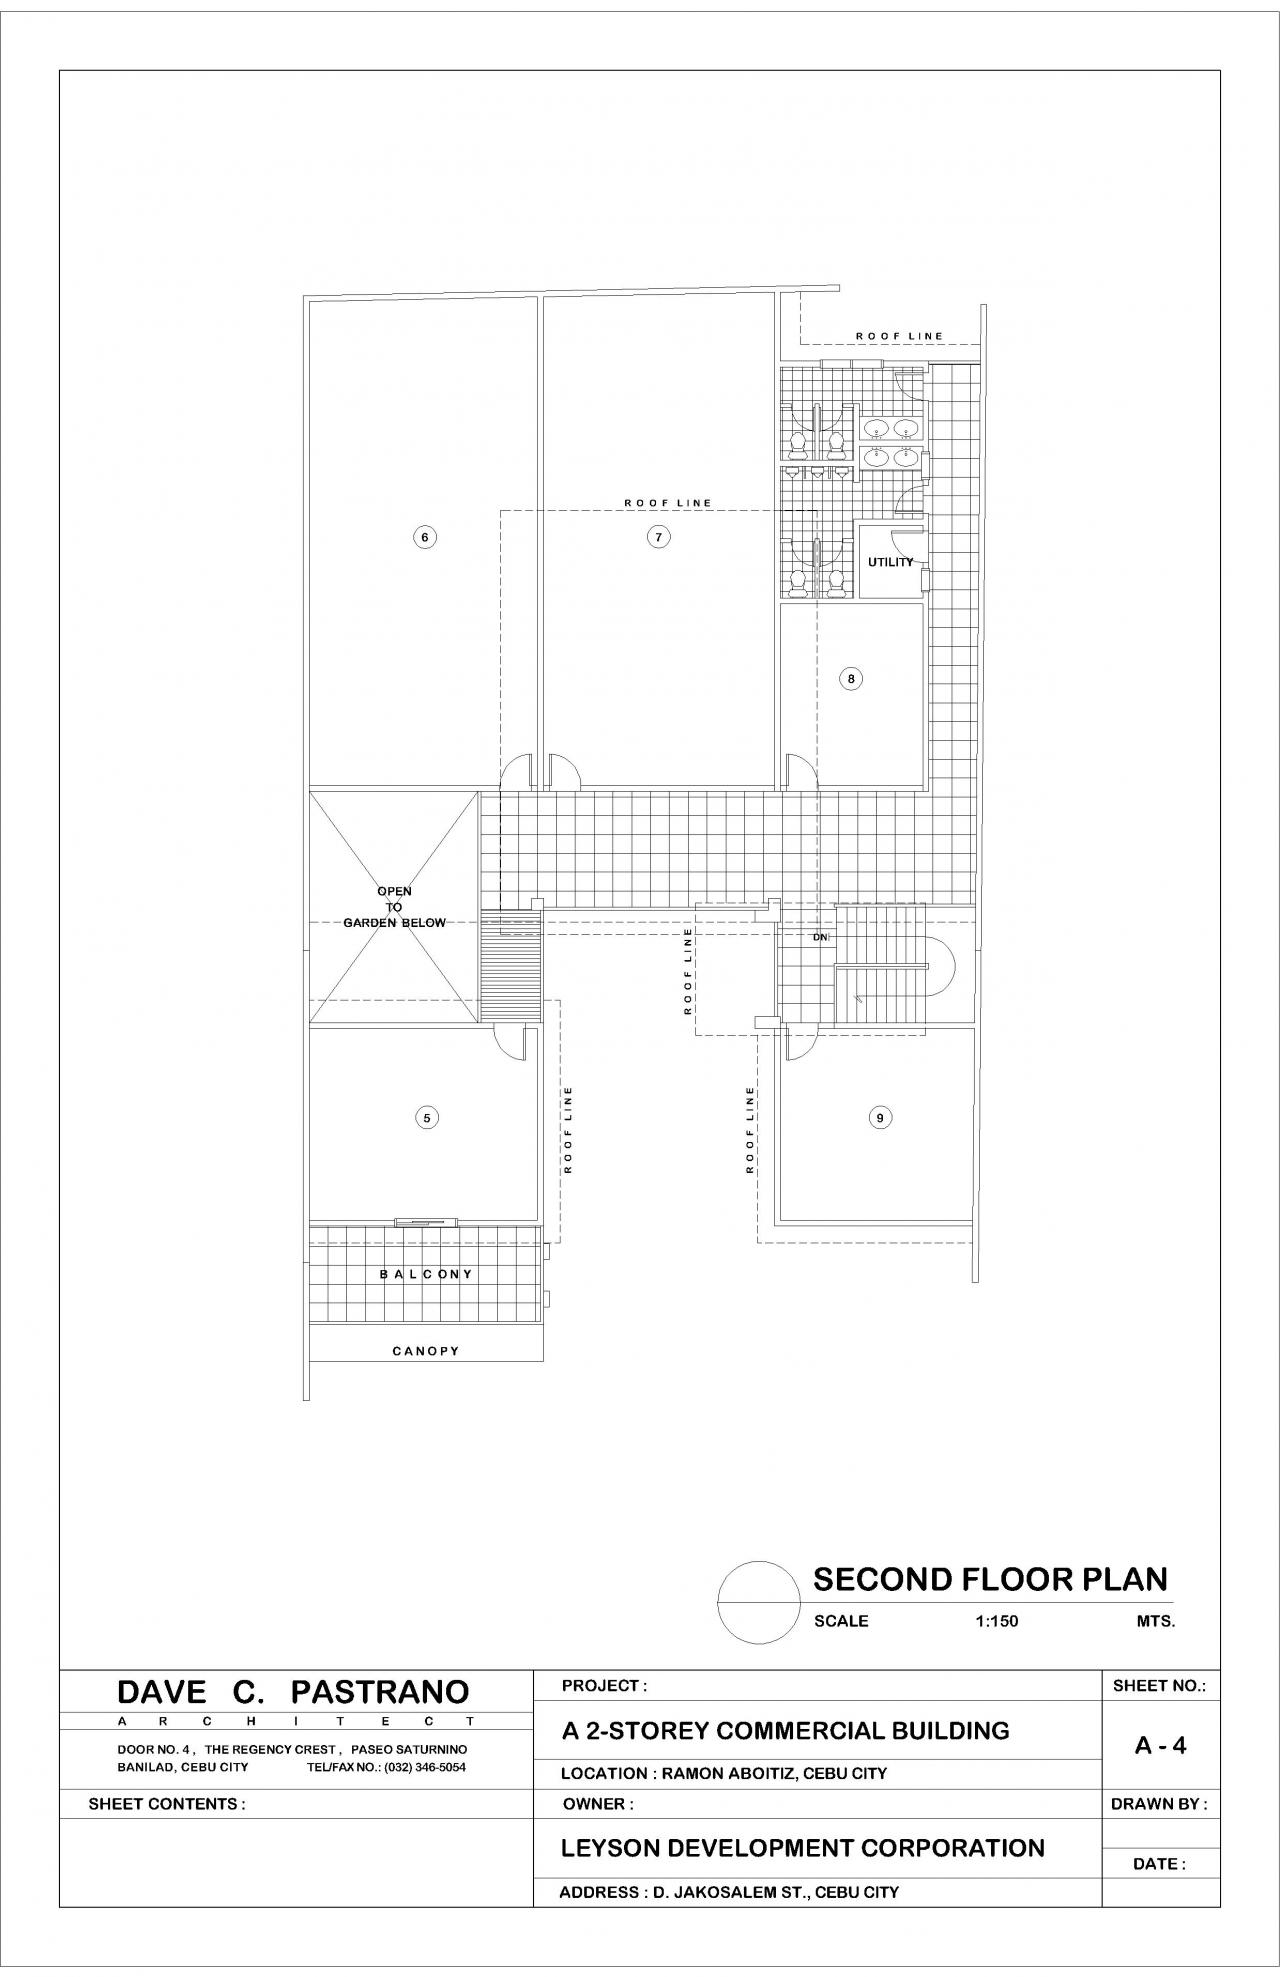 2 Storey Commercial Building Floor Plan